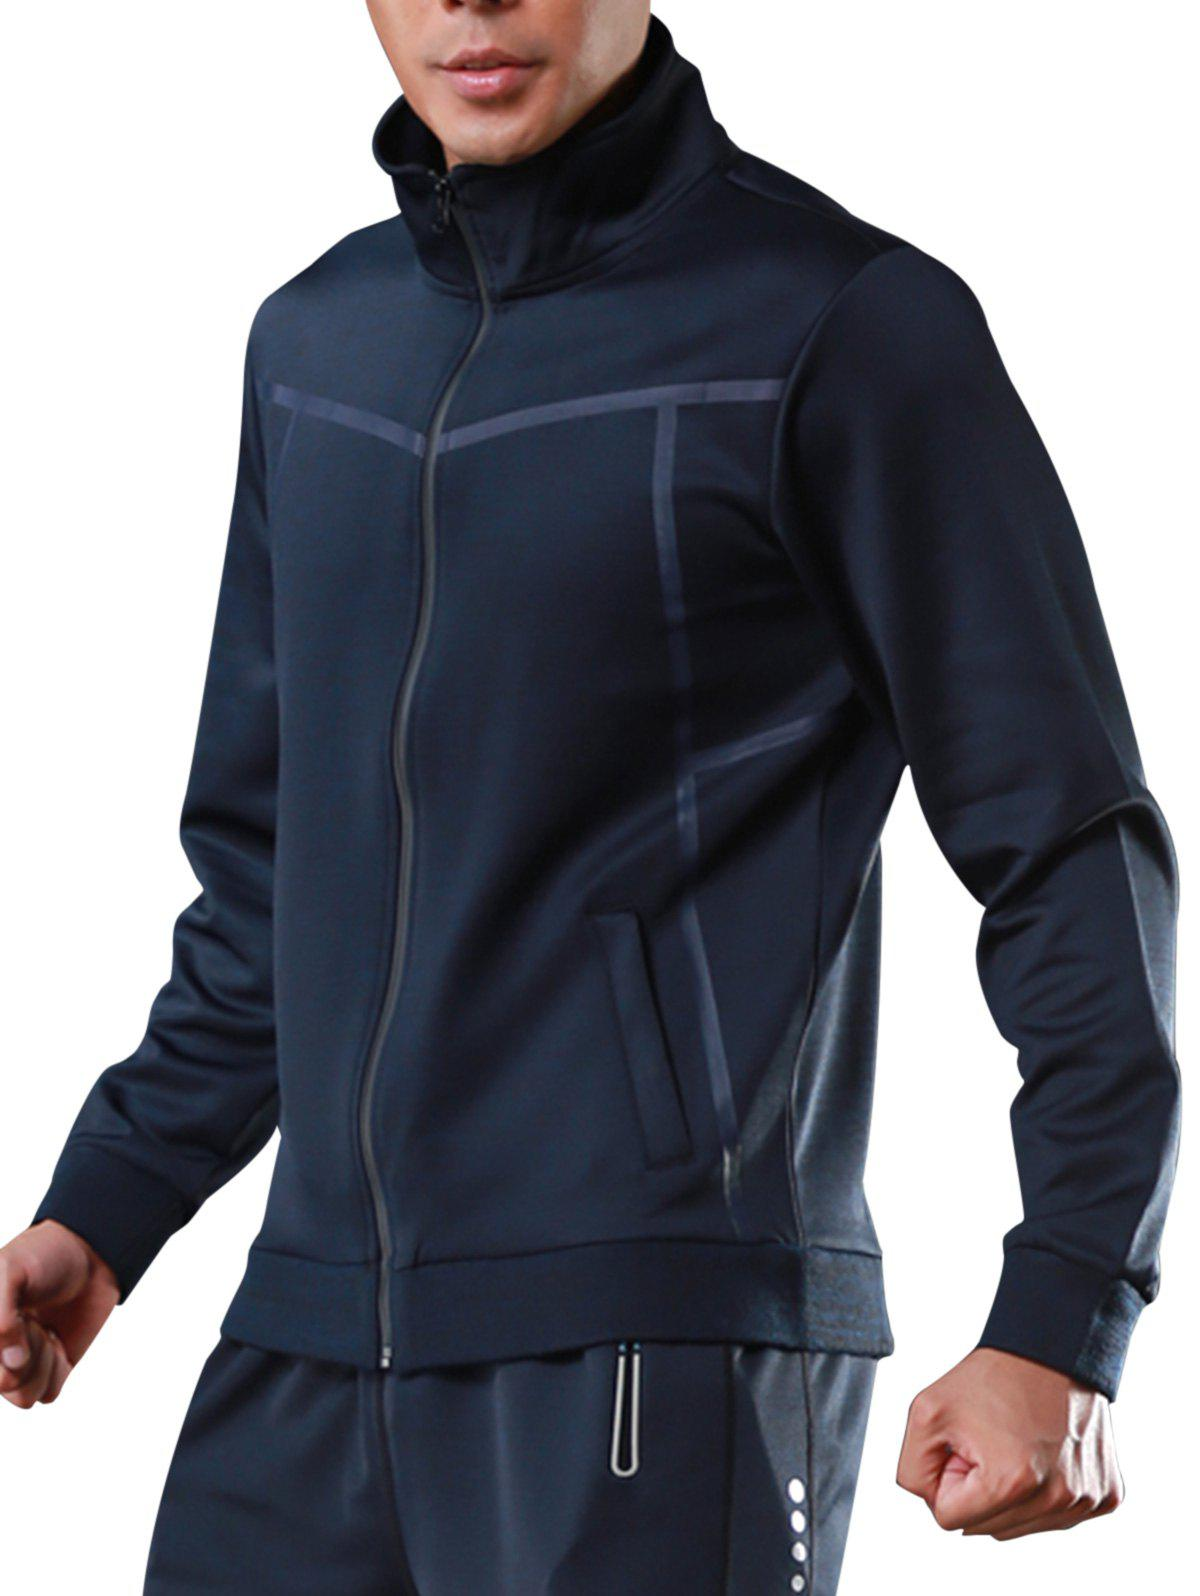 Zip Up Stand Collar Veste de survêtement de sport - Bleu L